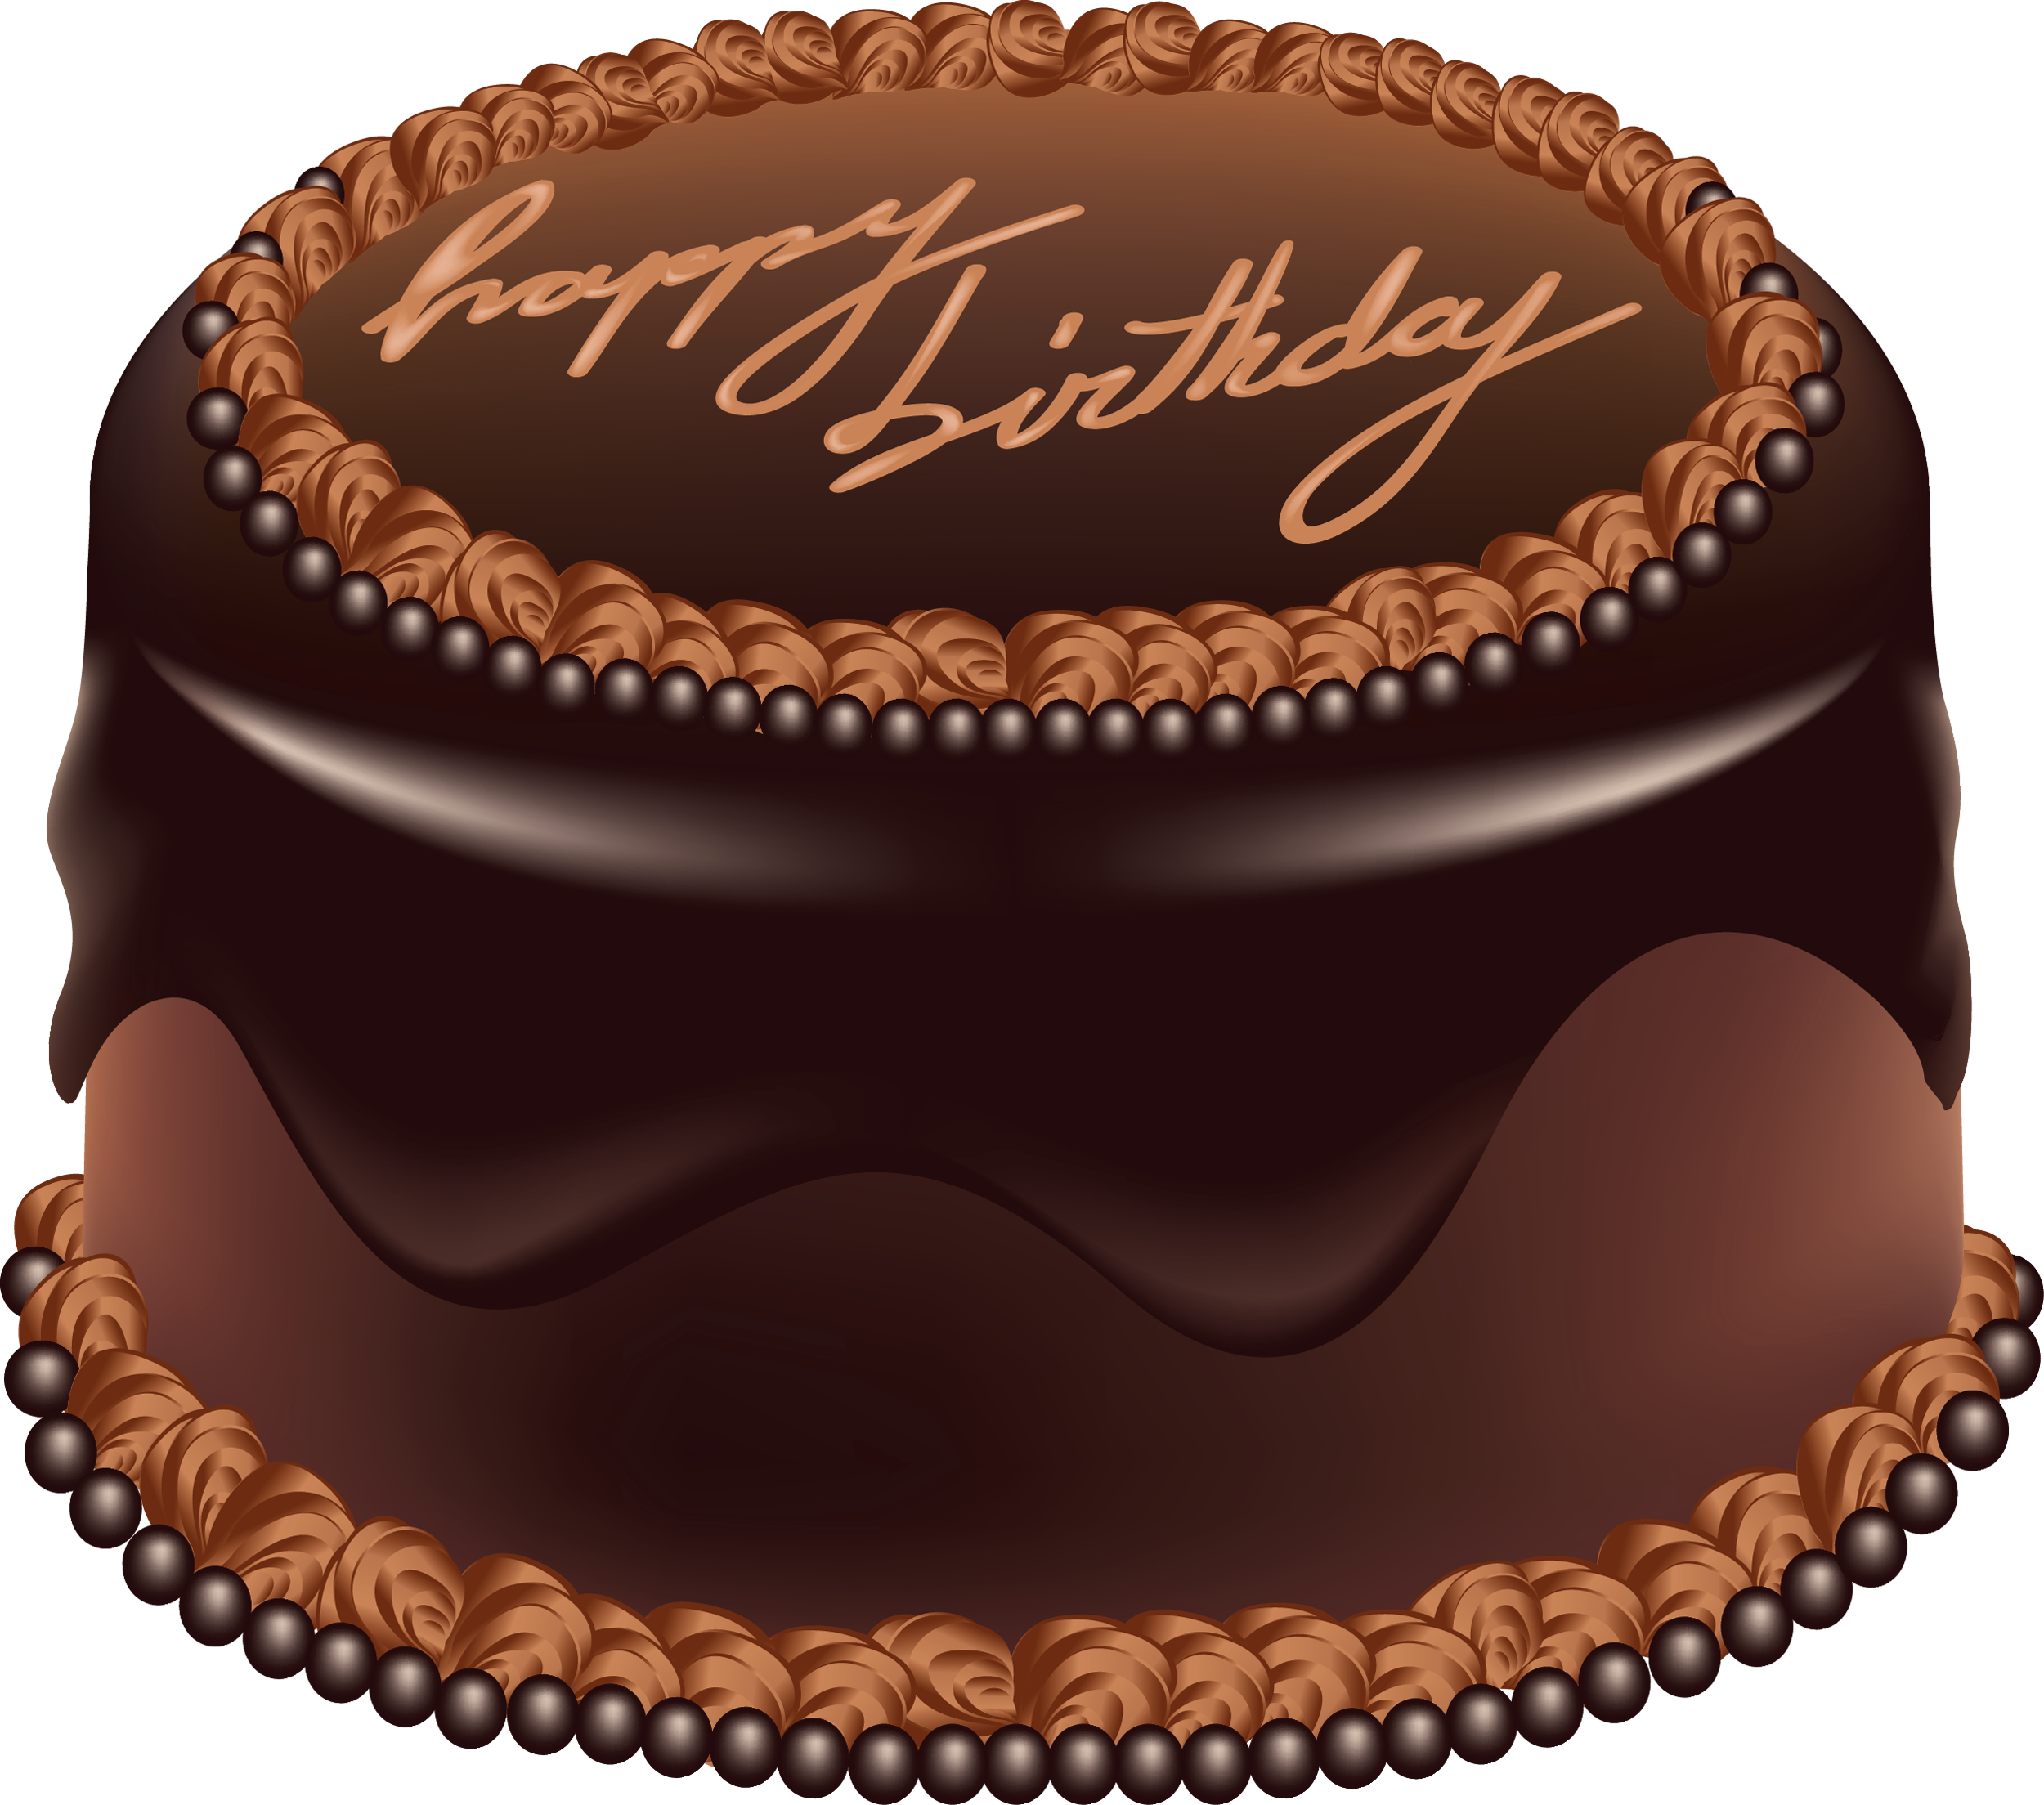 Chocolate Cake Clipart Free Download.